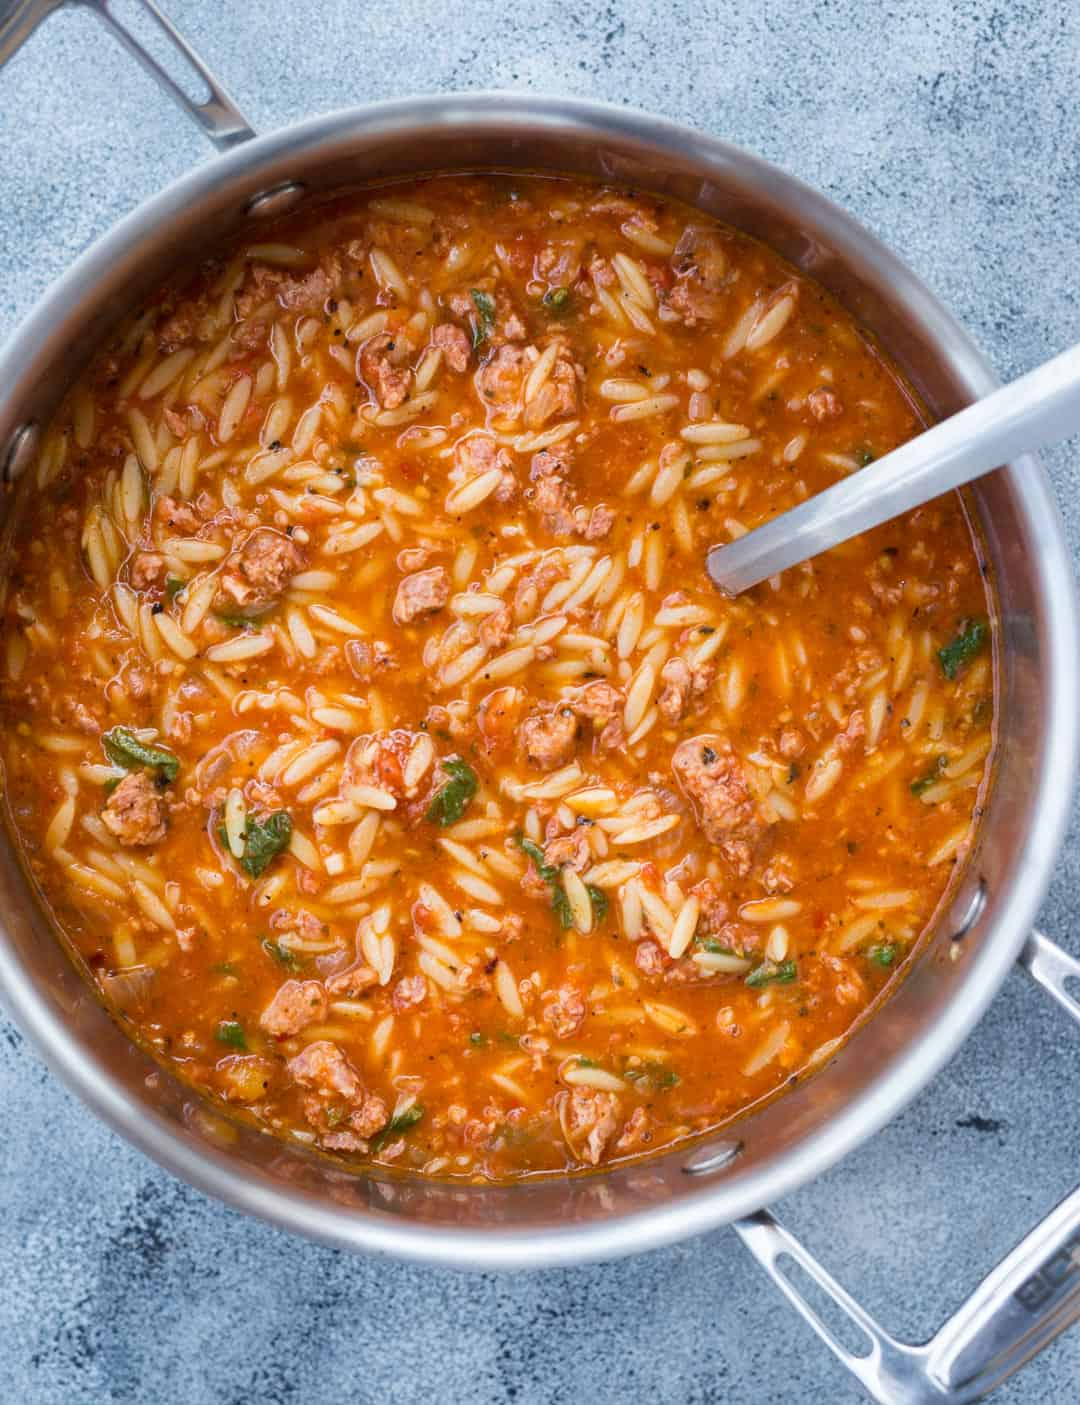 13. One Pot Sausage Orzo Soup with Spicy Italian Sausage